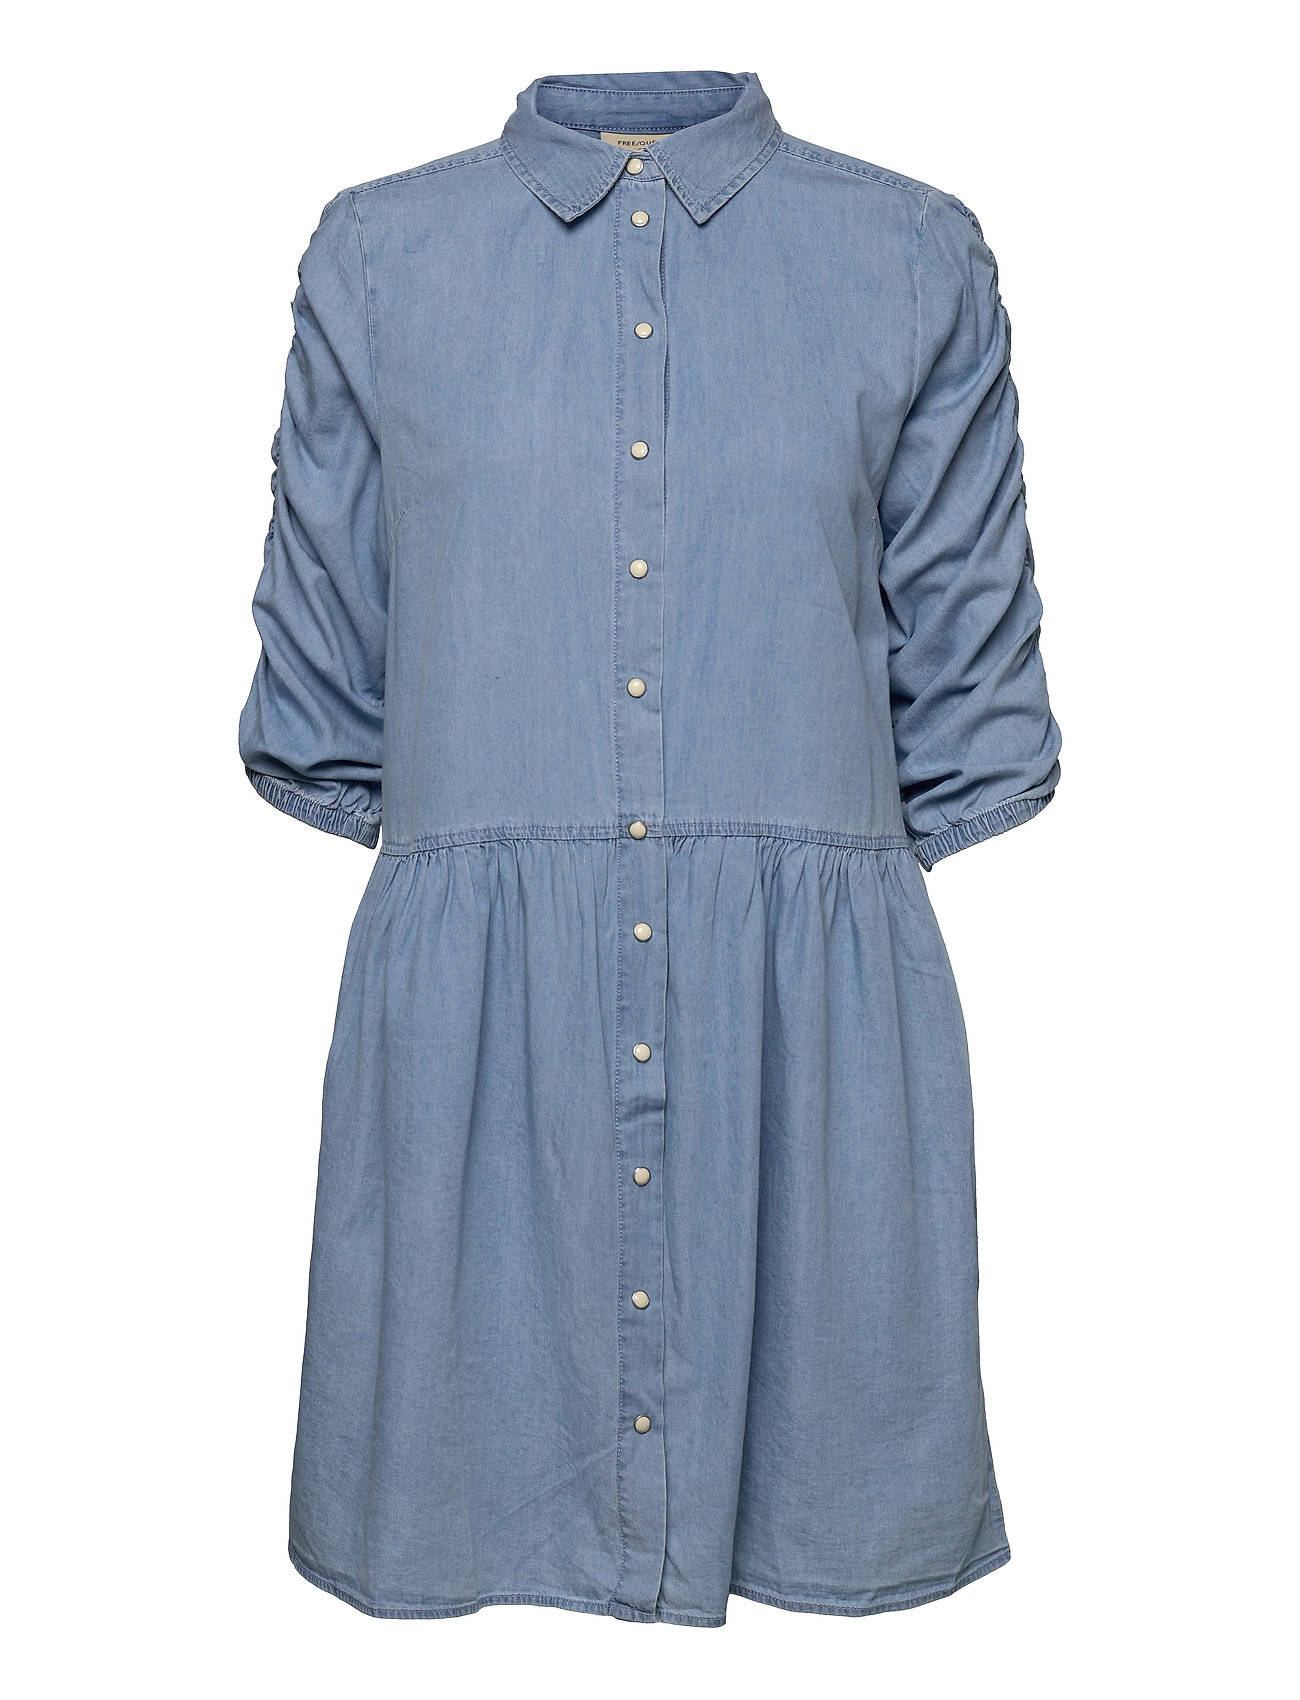 Fqbobby-Dr-Puff Dresses Everyday Dresses Blå FREE/QUENT